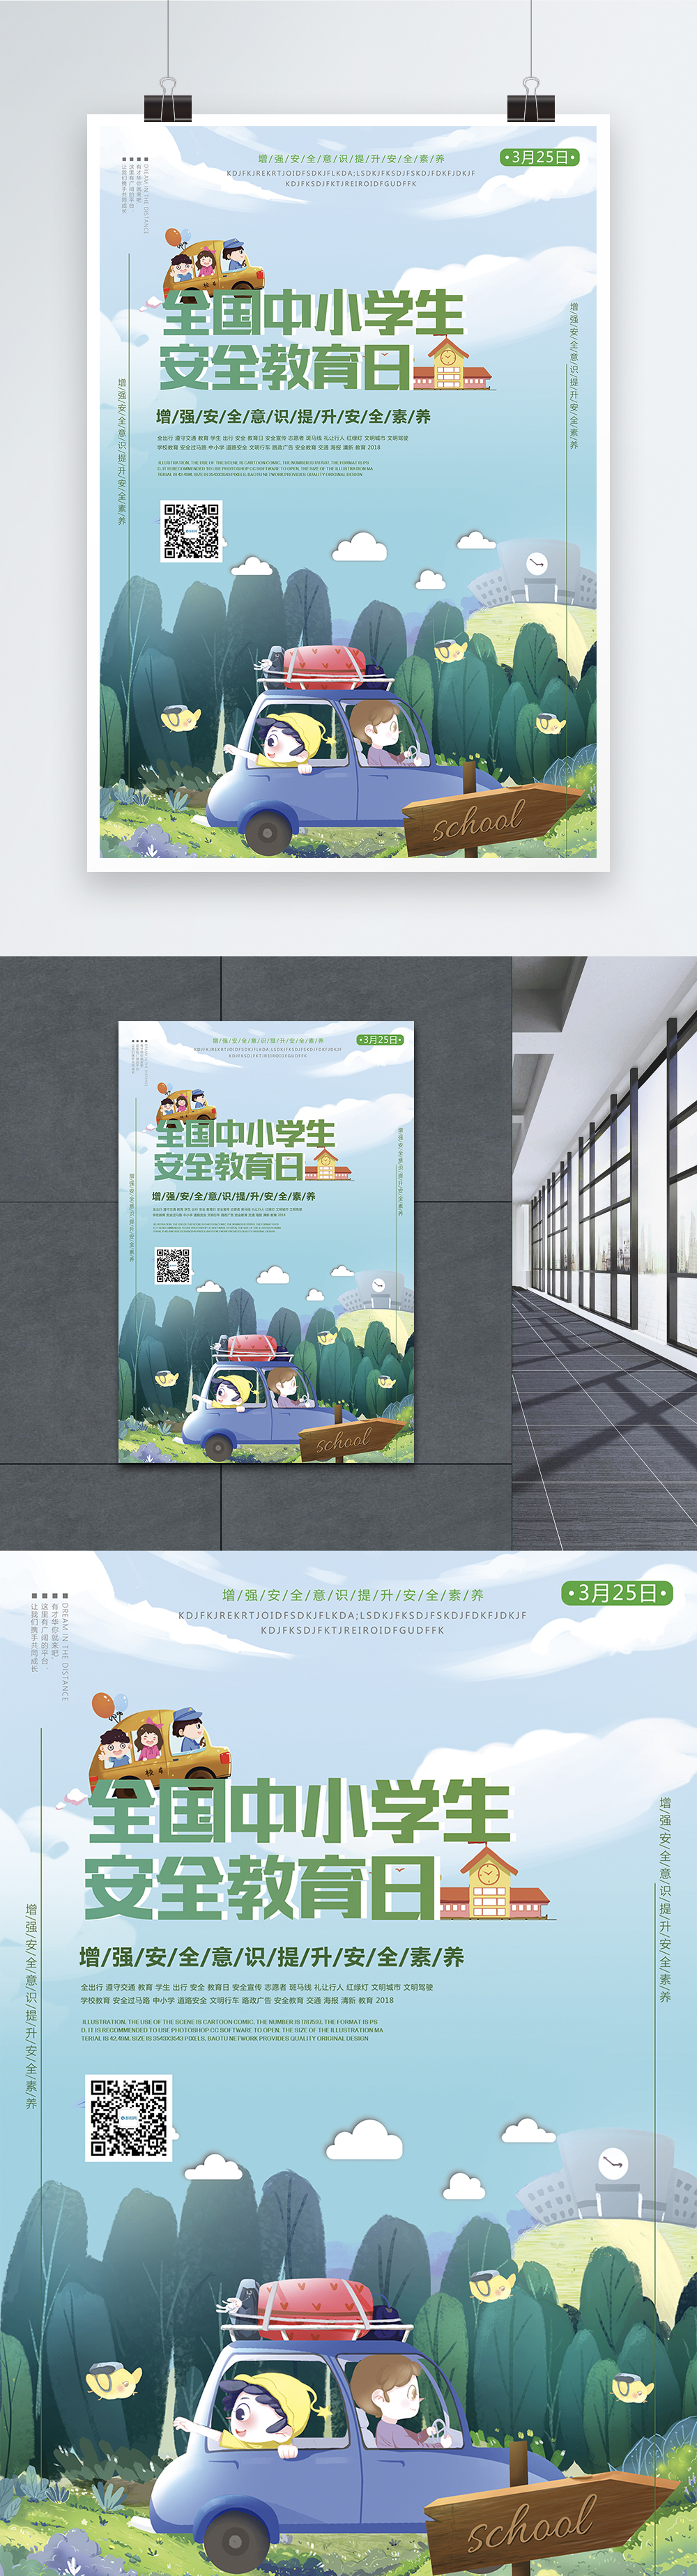 Green poster for national safety education day for primary